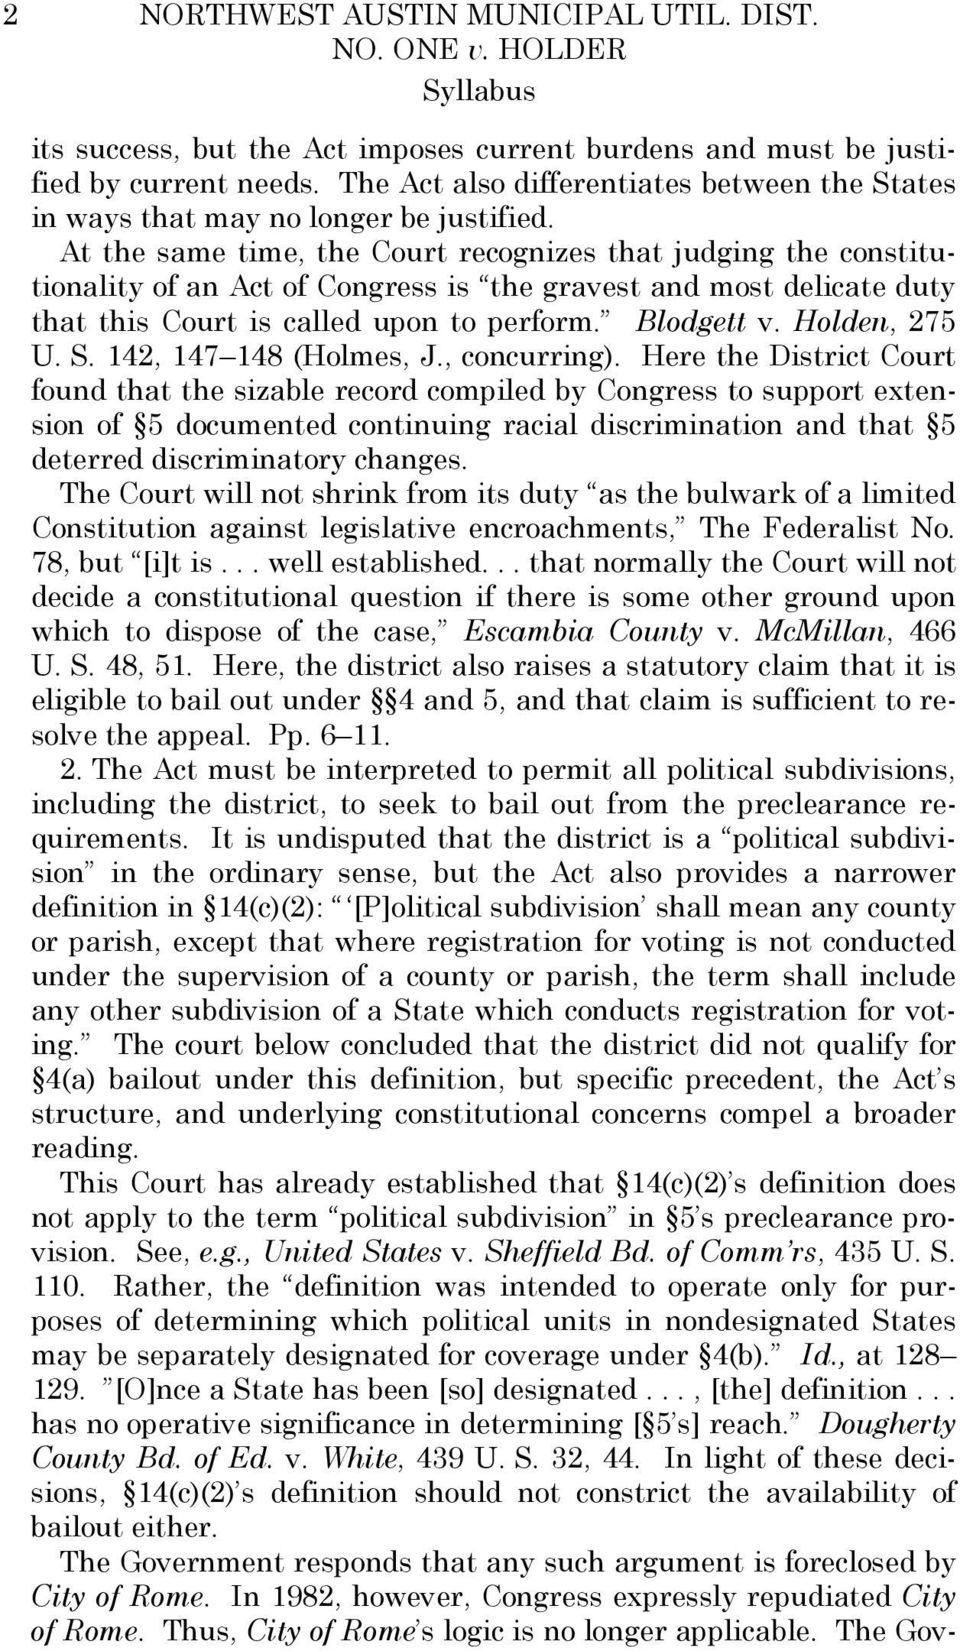 At the same time, the Court recognizes that judging the constitutionality of an Act of Congress is the gravest and most delicate duty that this Court is called upon to perform. Blodgett v.